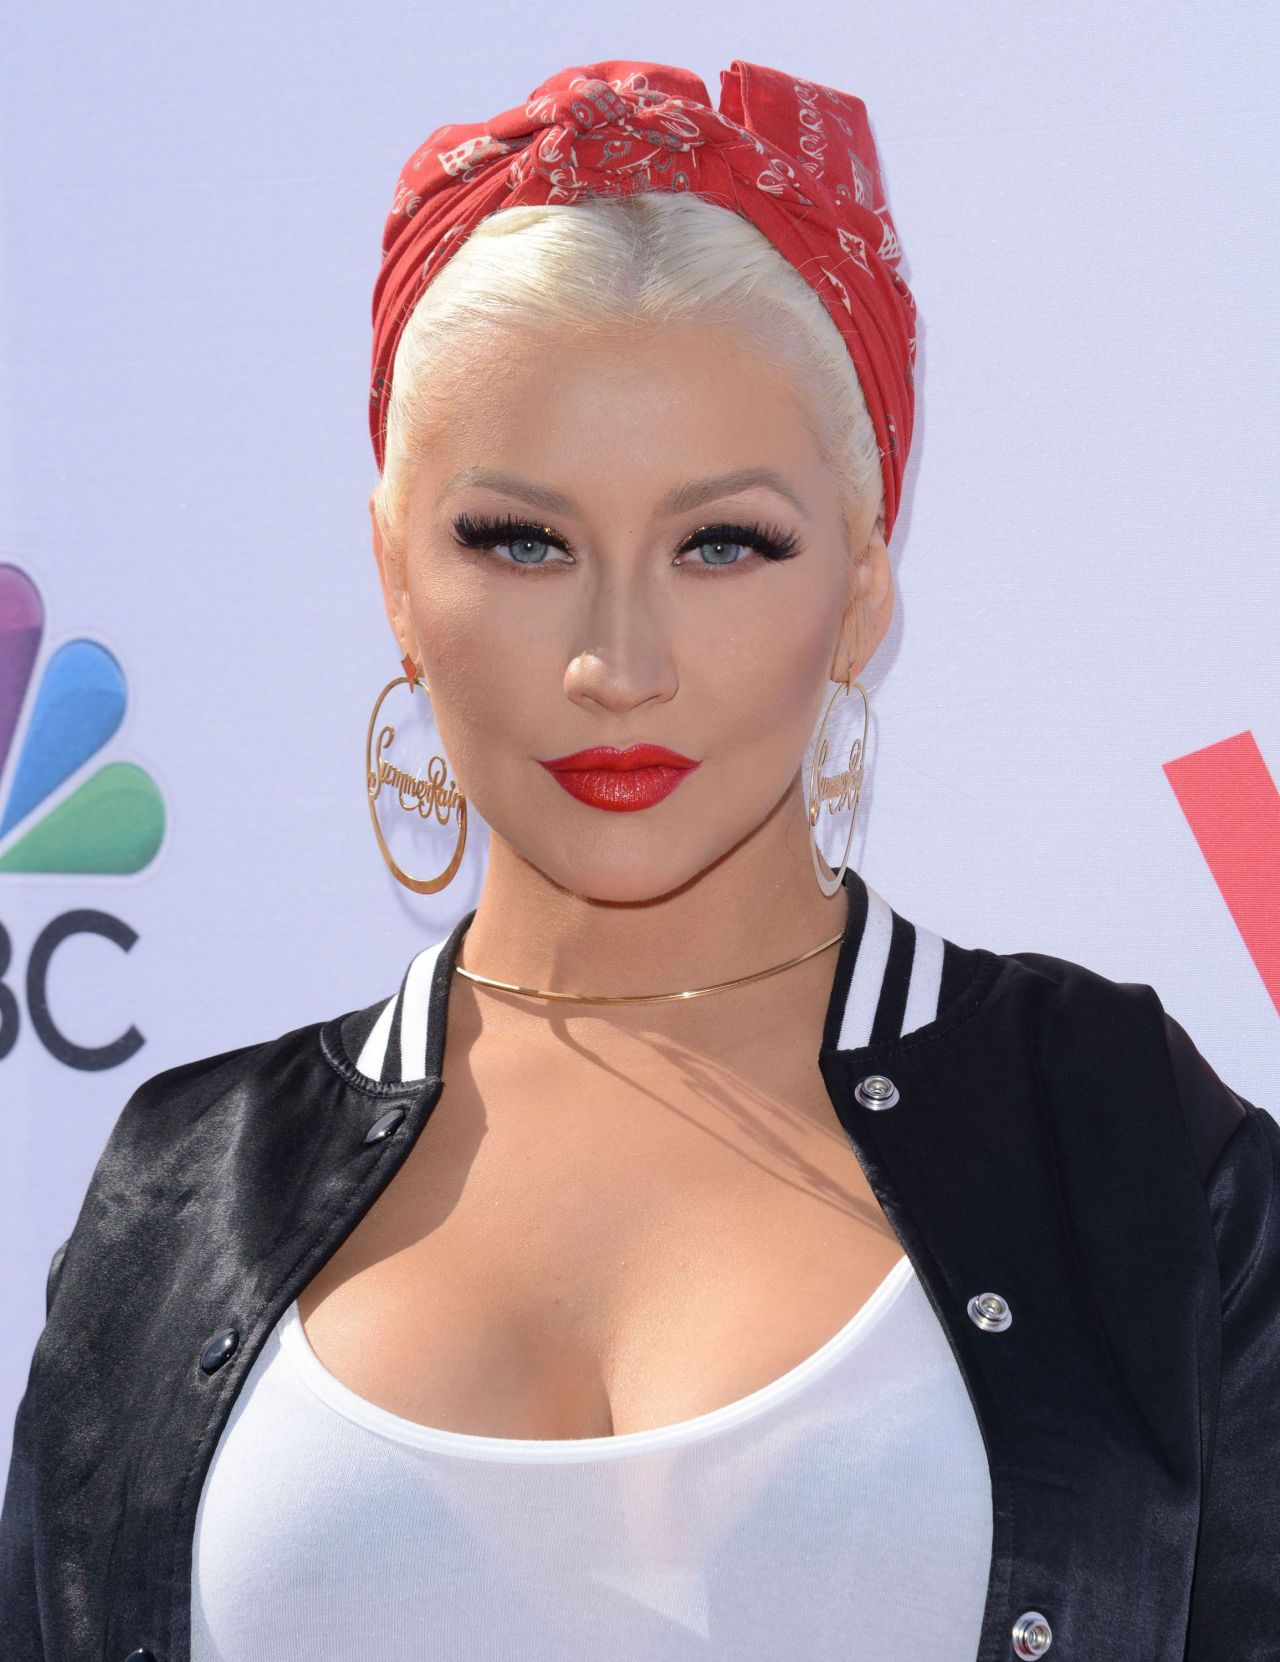 Christina Aguilera The Voice Karaoke For Charity In West